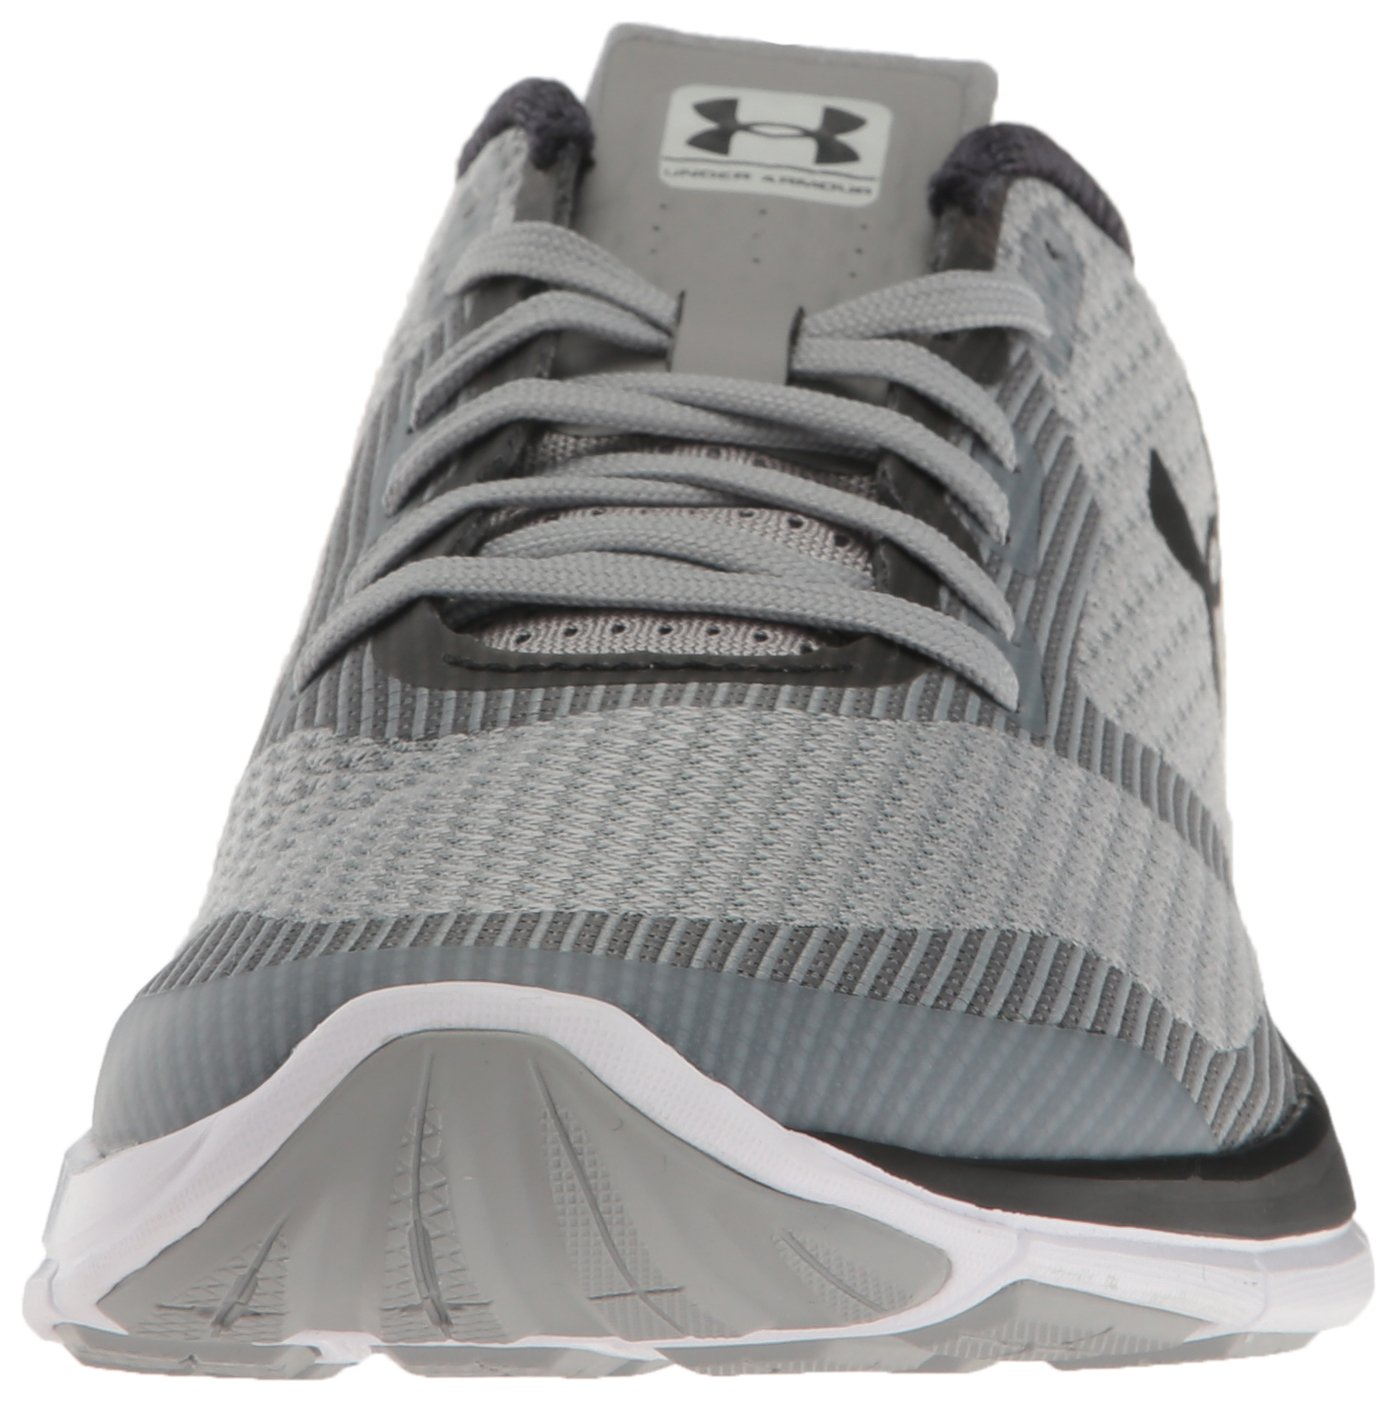 Under 10 Armour Women's Charged Lightning Running Shoe B01GQJINCU 10 Under M US|Gray Wolf (031)/White 8ae618